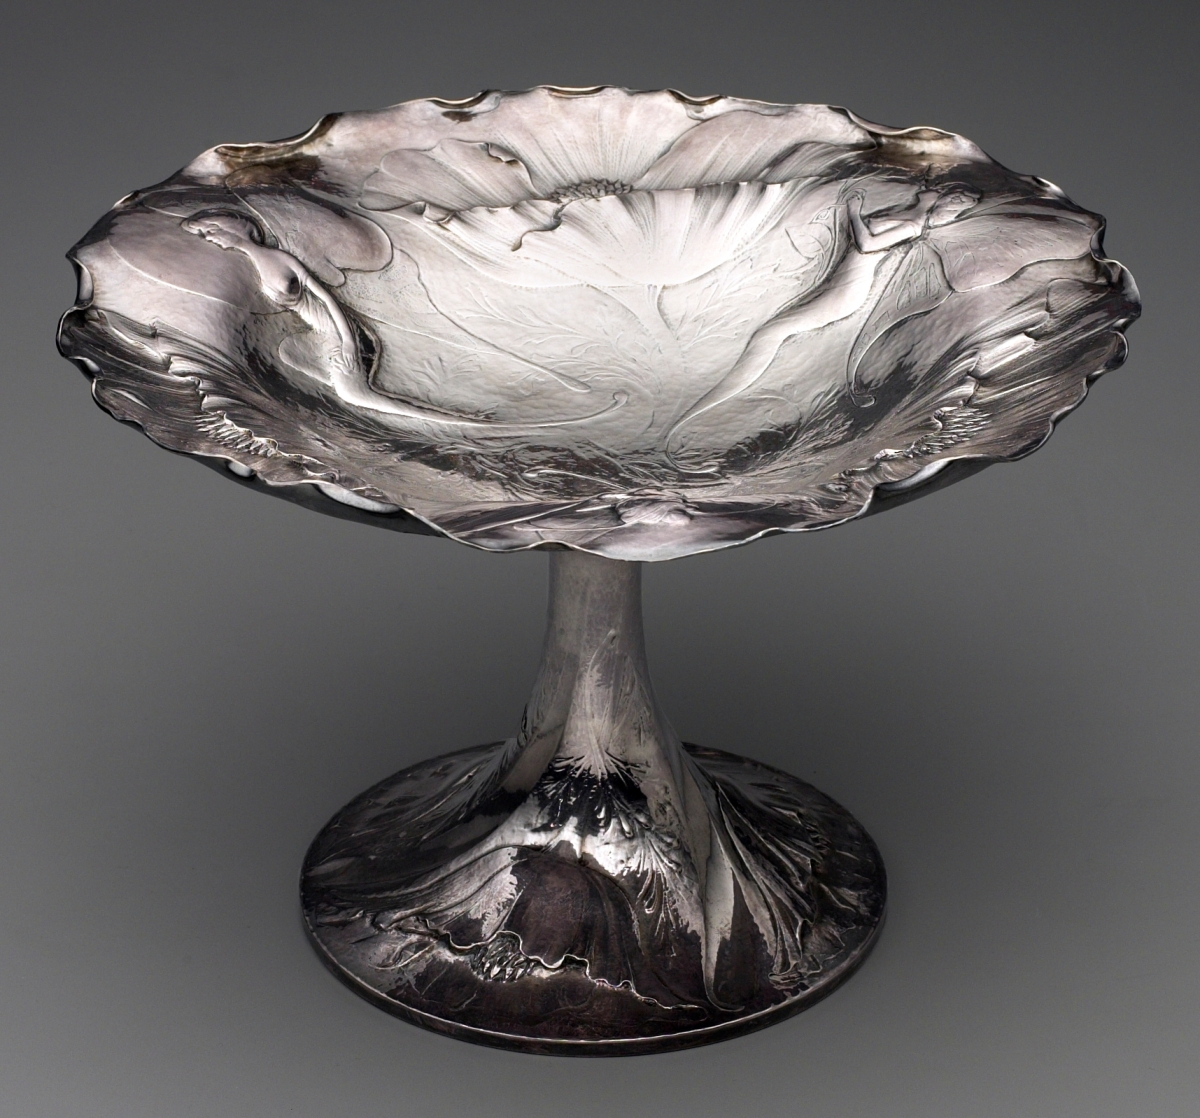 A California CompoteCompote by Clemens Friedell, 1914. Sterling silver. Mabel Brady Garvan Collection, by exchange.In 2001, when scanning through a Skinner Discovery auction catalog, I was surprised to find this extraordinary compote with buxom lady fairies sitting amid California poppies by Clemens Friedell, recognized since the 1970s as an important Southern California silversmith from the Arts and Crafts Movement. Born in Louisiana, but trained as a silversmith in Vienna, Friedell was hired by the Gorham Manufacturing Company in Providence, R.I., in 1901 where he worked in the chasing room. He brought his formidable chasing skills to the company's deluxe Martelé line that featured repousséd and chased ornament in the Art Nouveau style. He later moved to California and established a shop in Pasadena by 1911. Because of his familiarity with Gorham designs, floral ornament and forms frequently characterize Friedell's silverware, but it is notably Pasadena's abundant flowers that inspired the design of this compote.